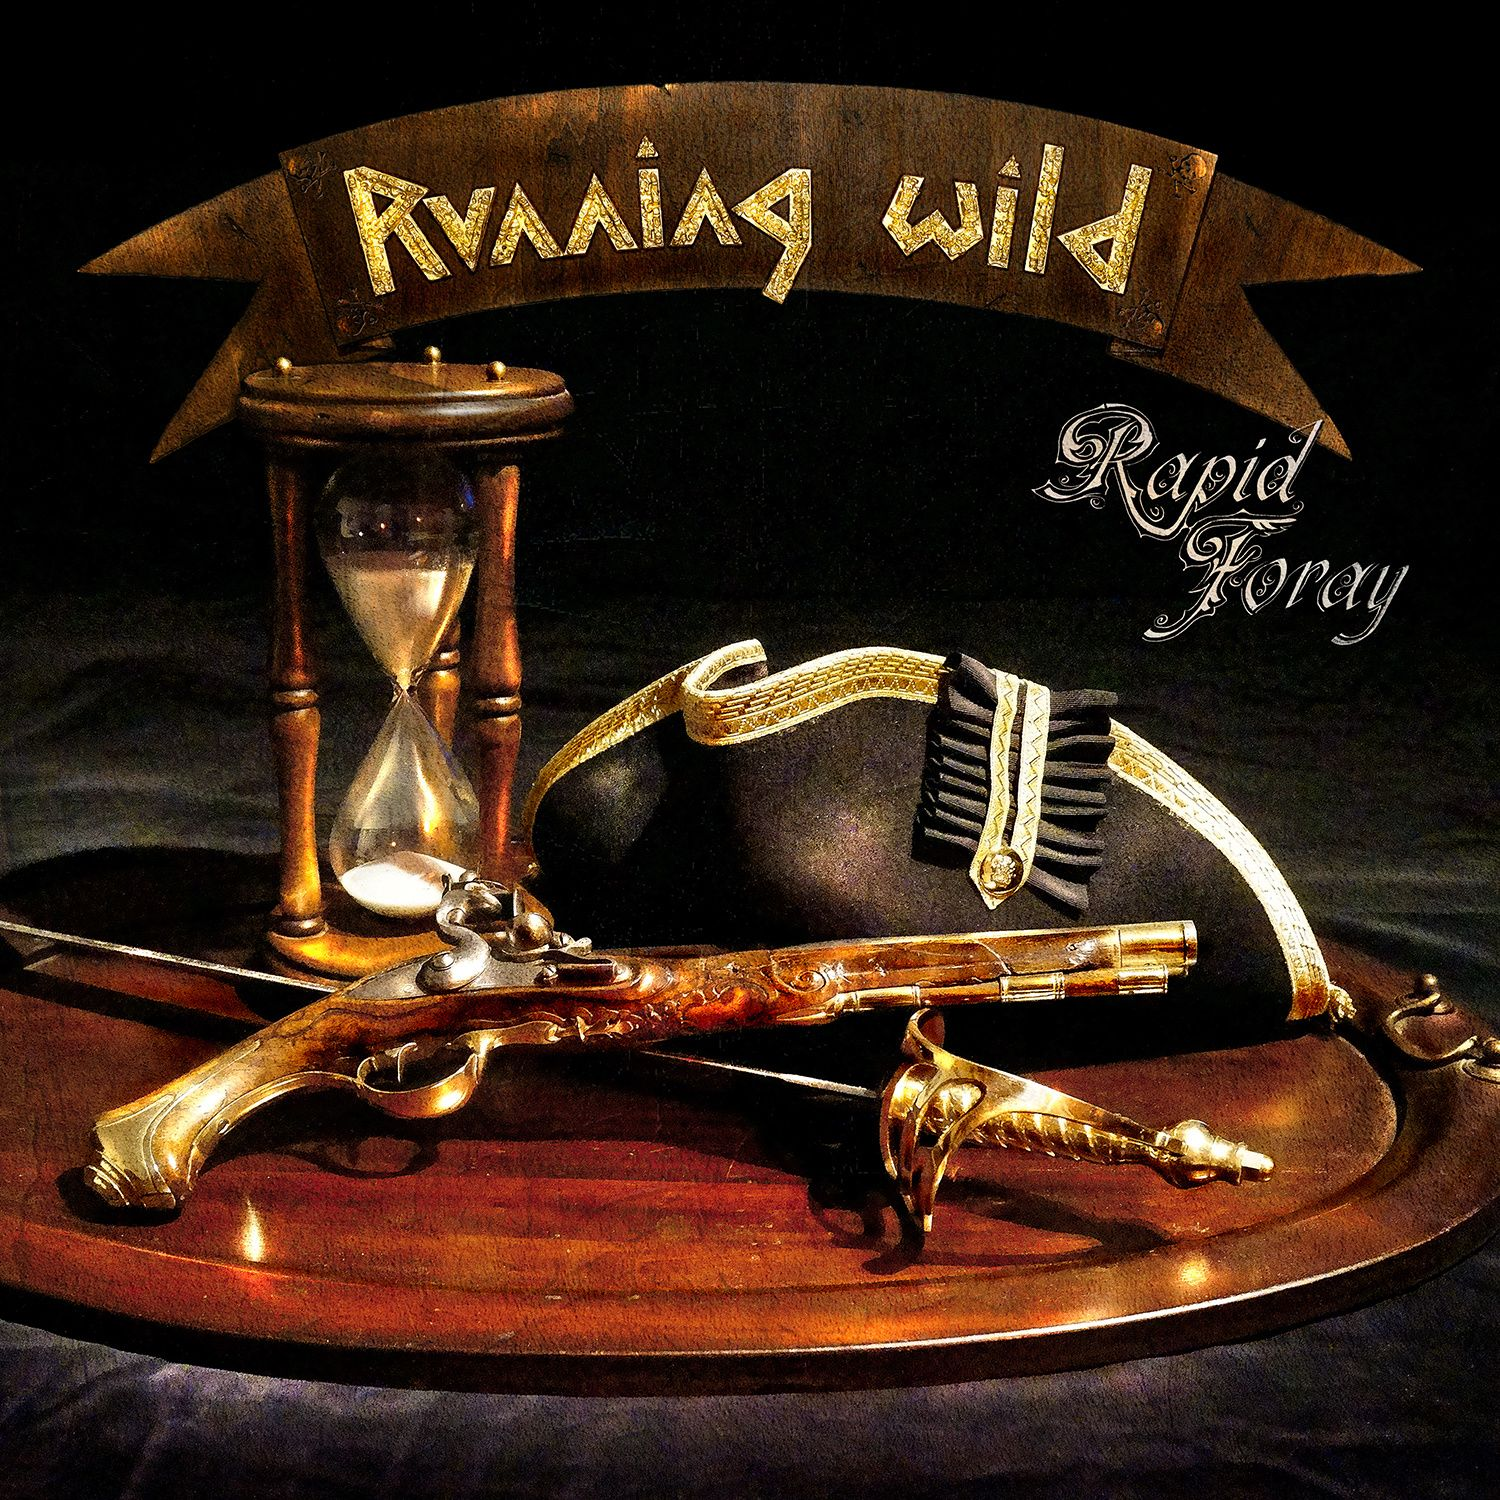 Running Wild - Rapid Foray album cover